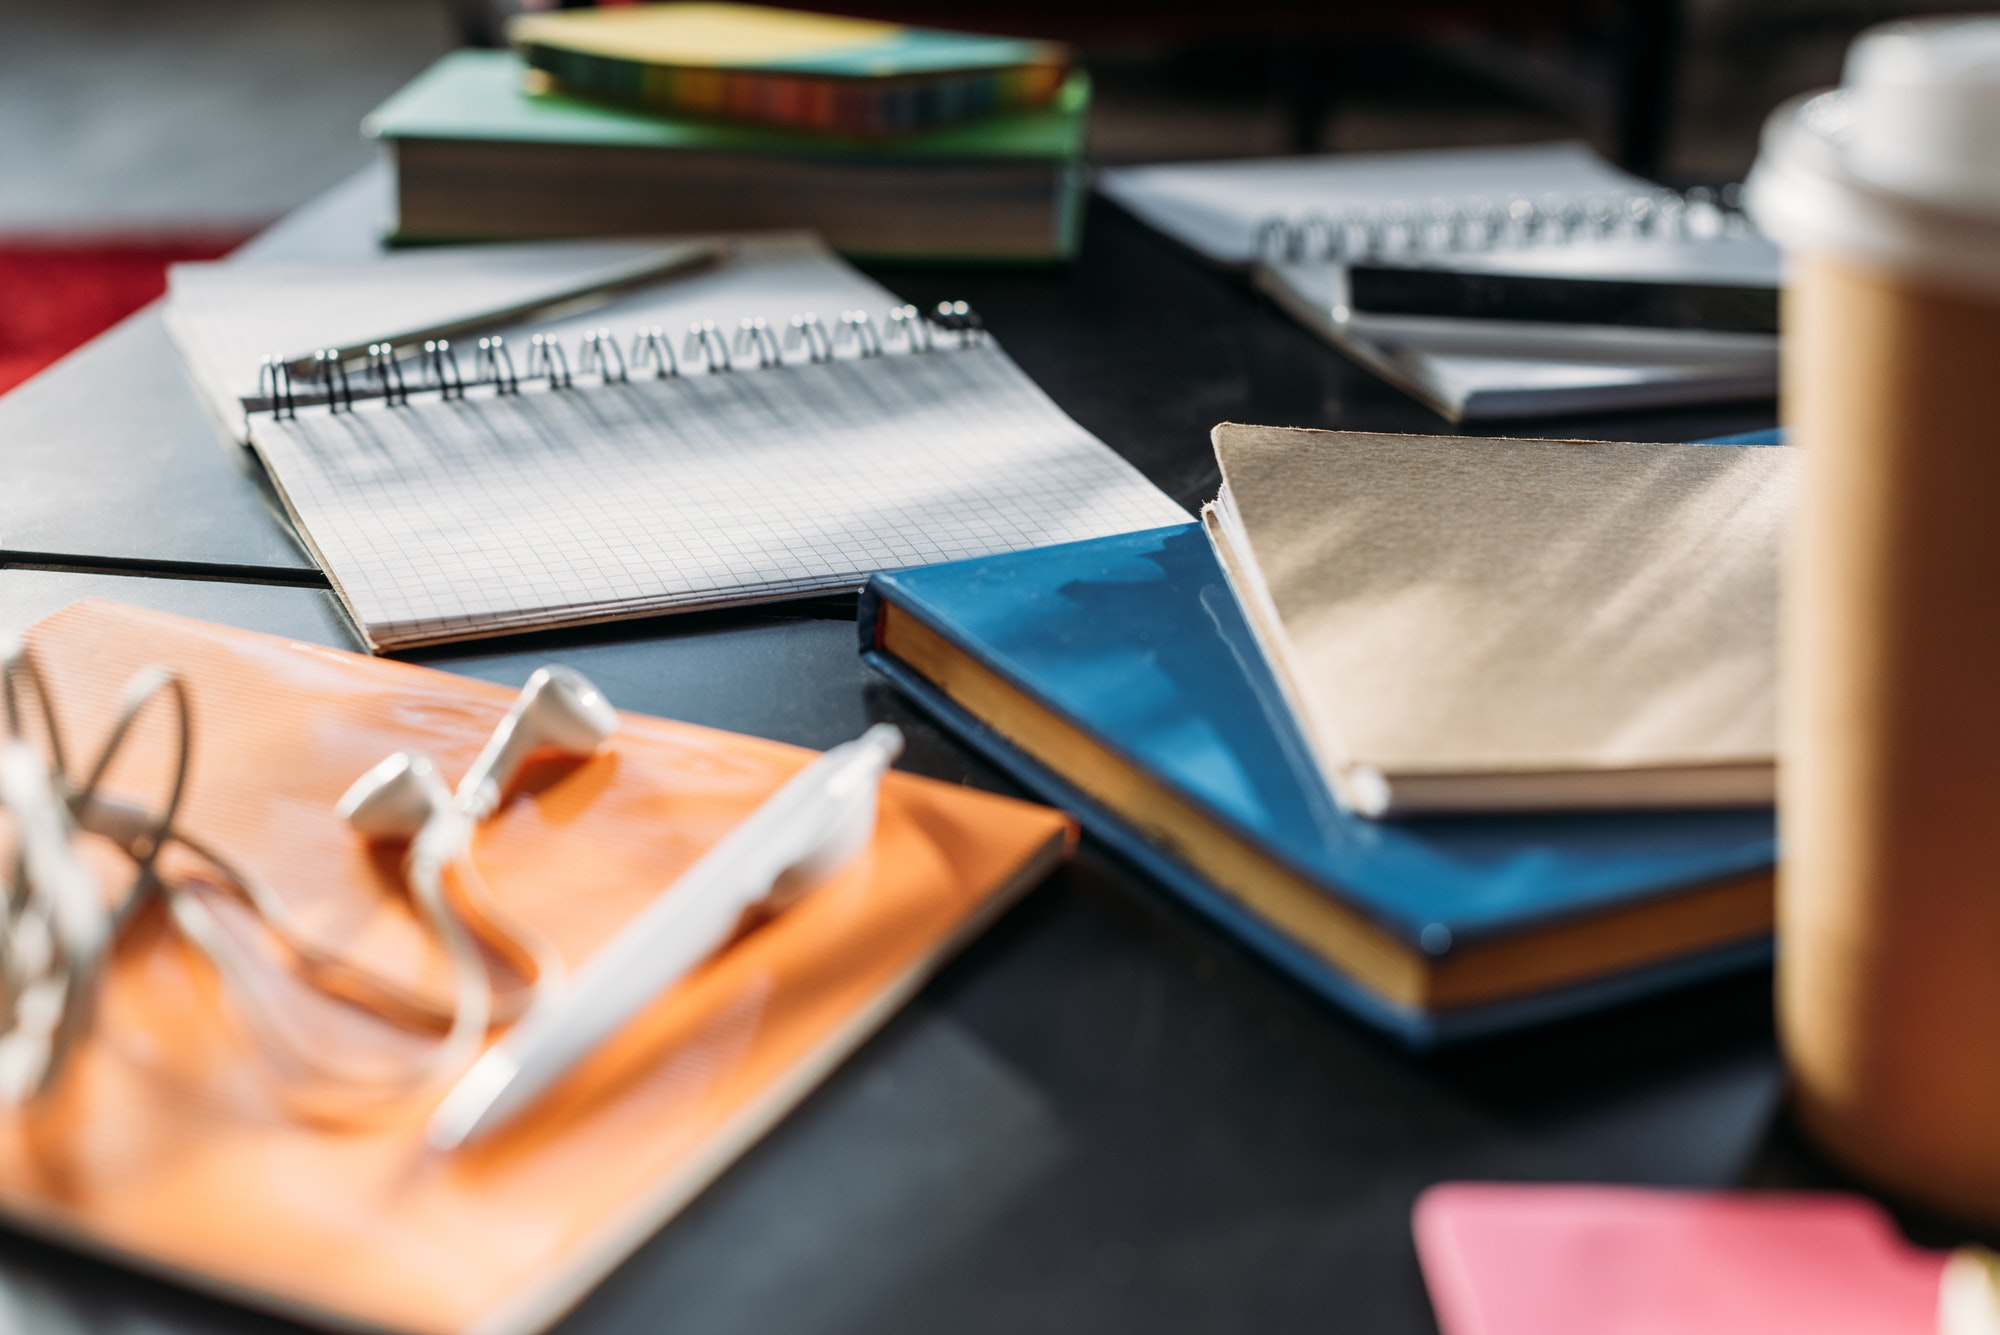 notebooks and books for studying on black table